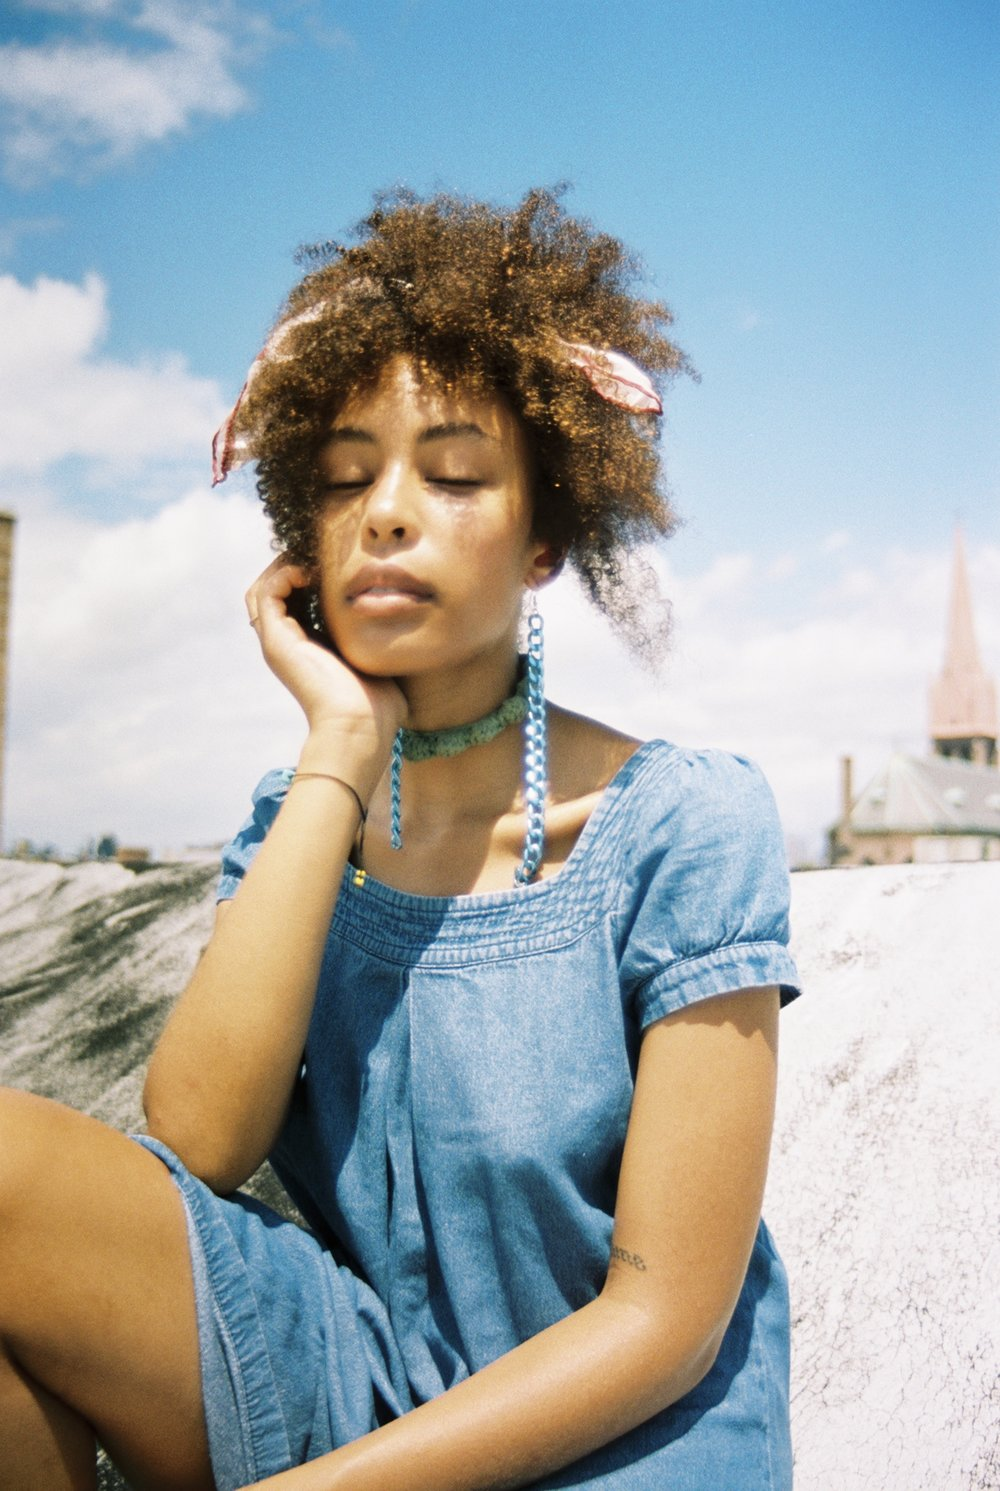 Stazi wearing jewelry from her brand  Flourish Wear  captured by Natalie Yang.